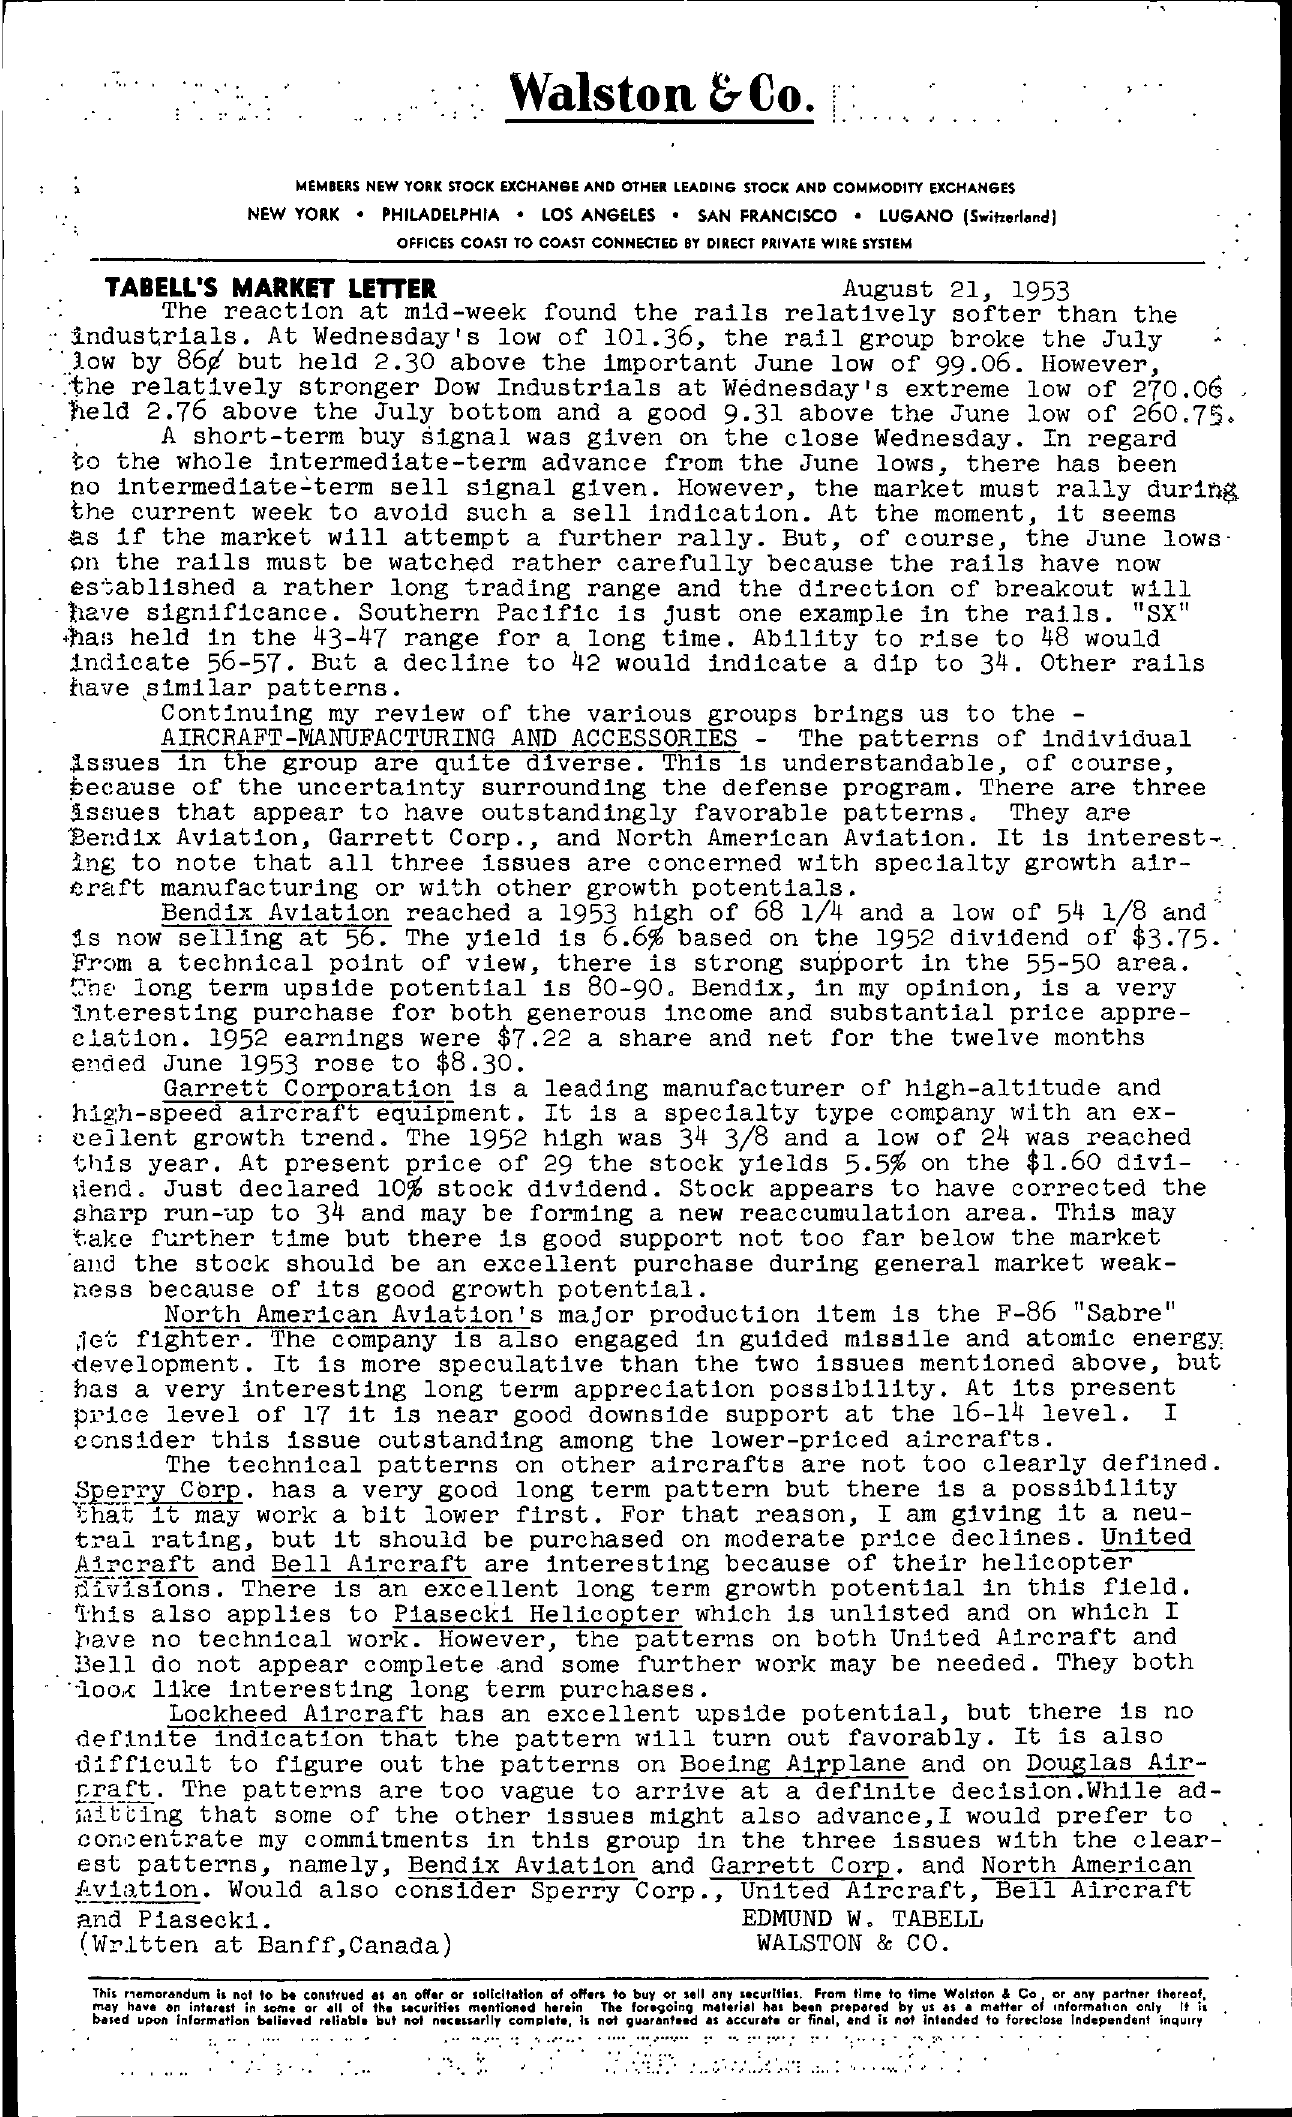 Tabell's Market Letter - August 21, 1953